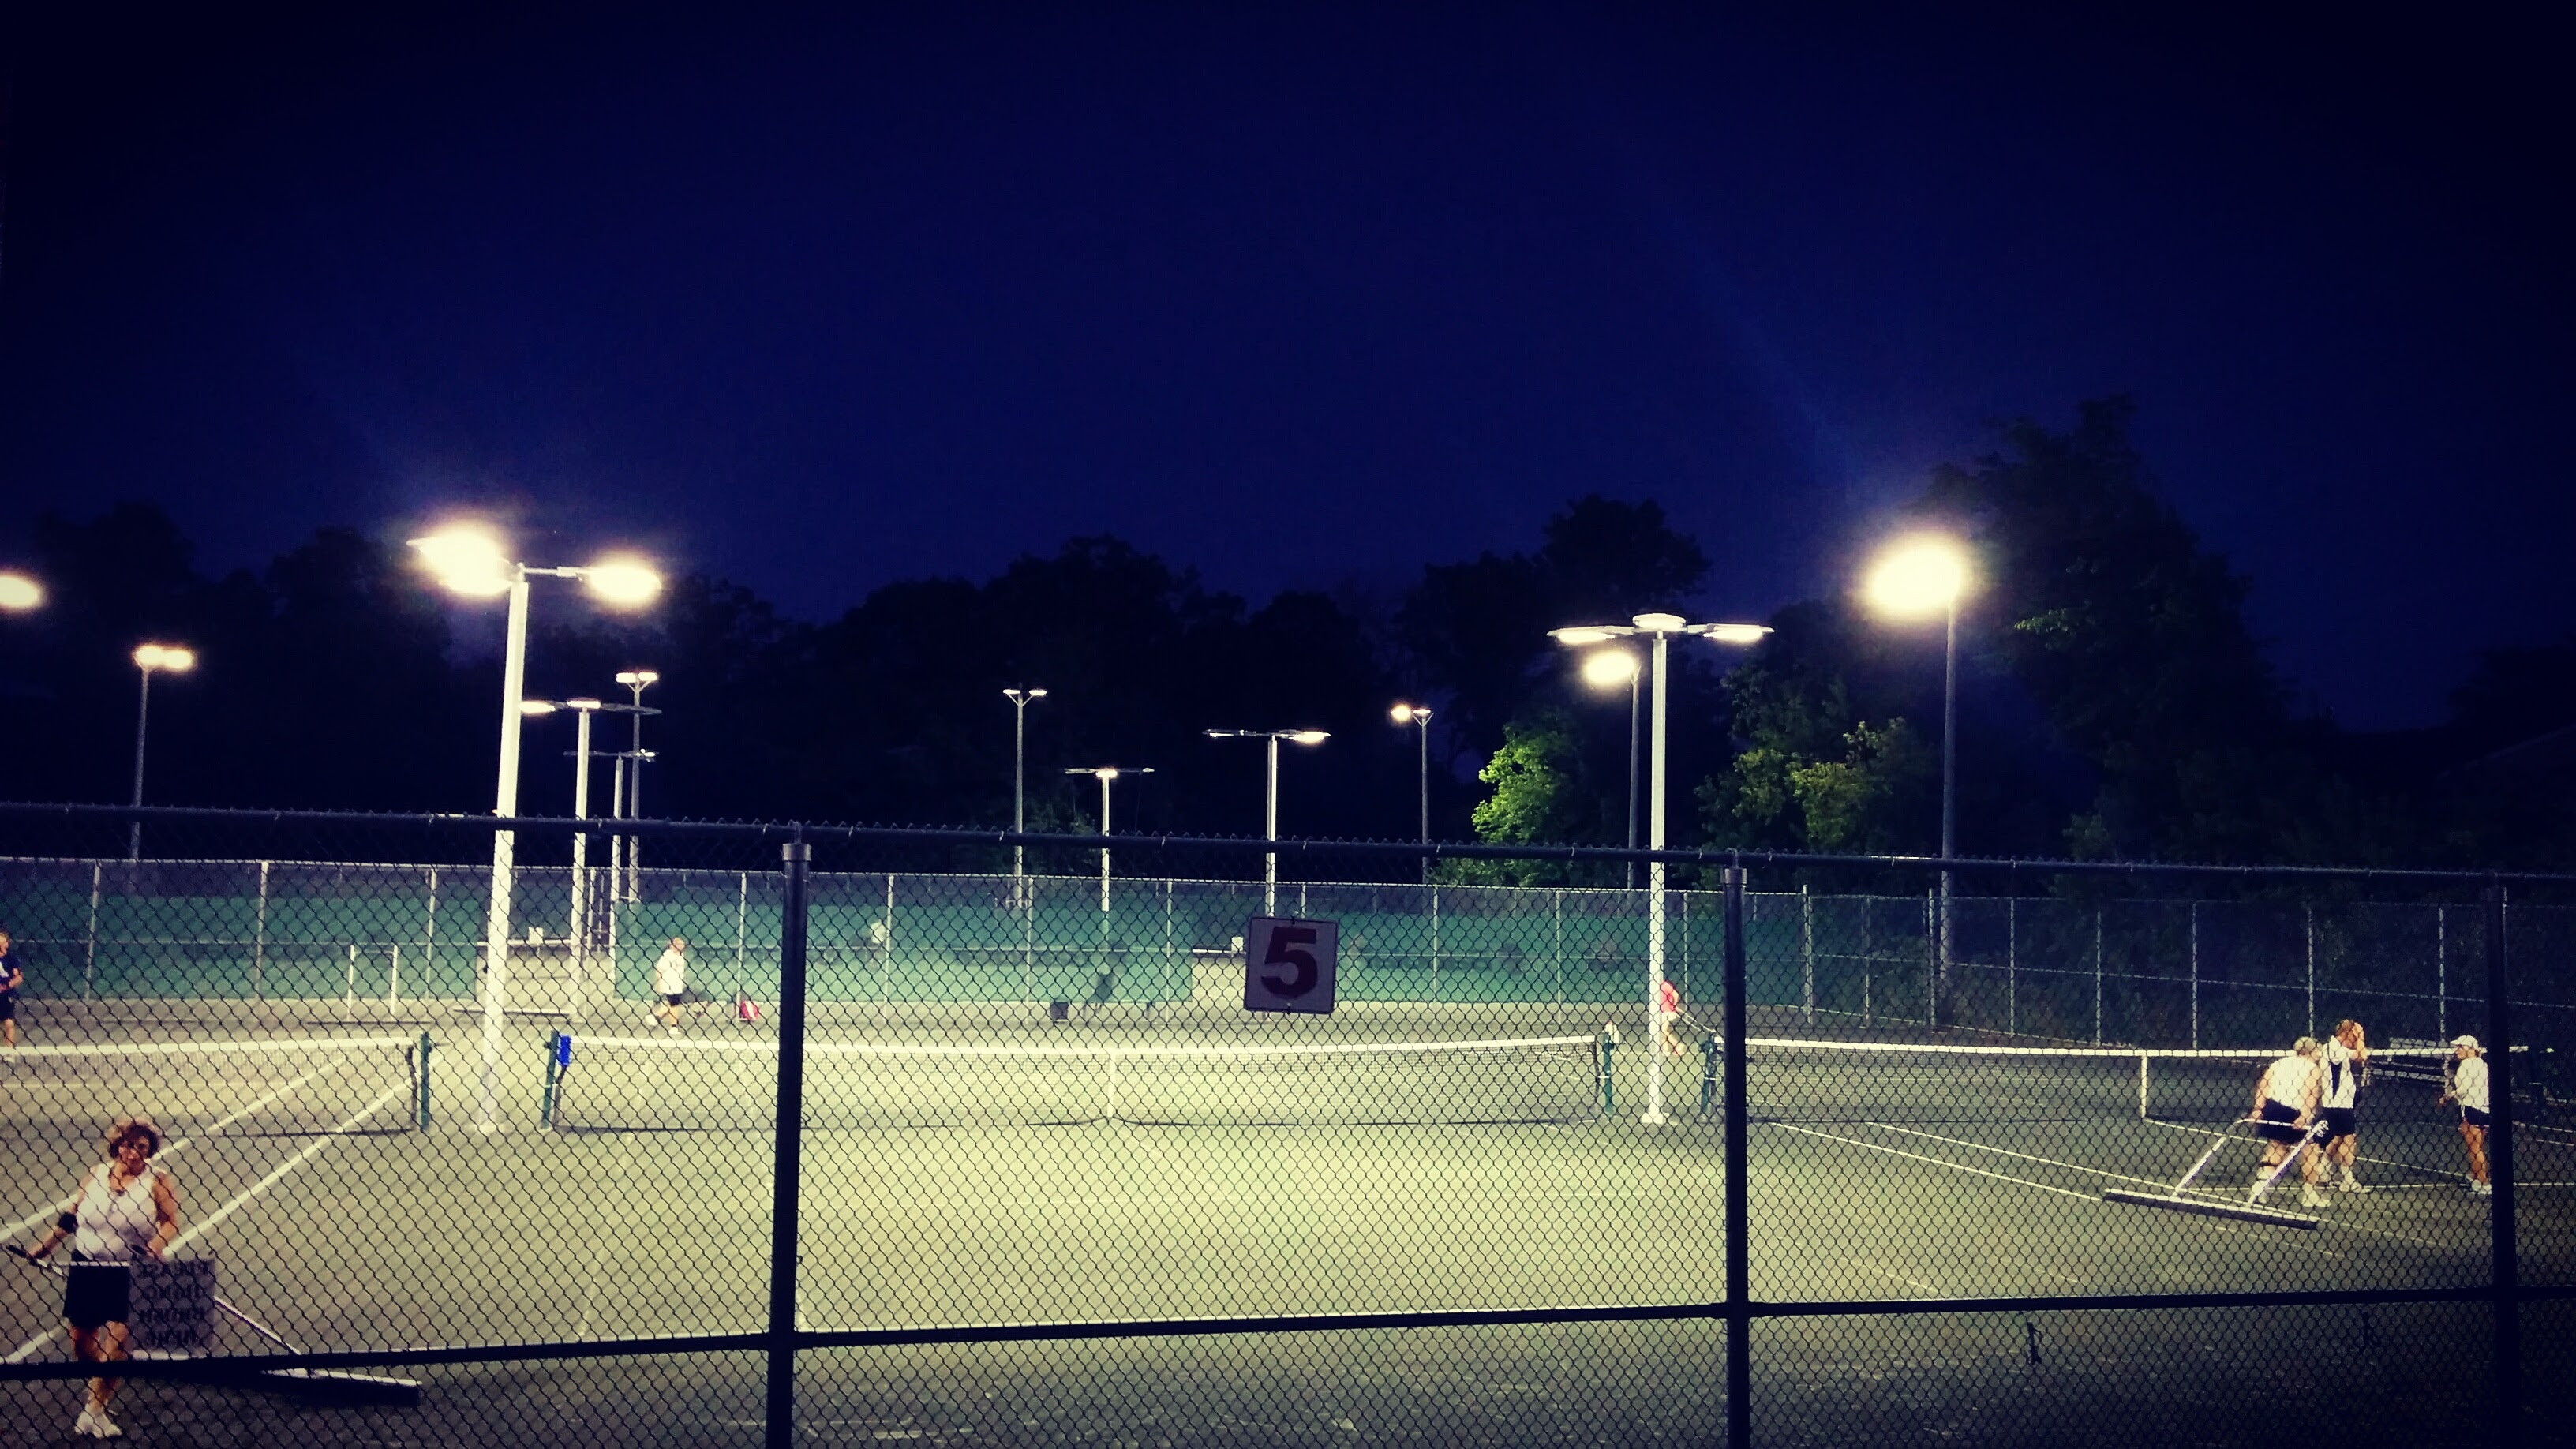 Night time tennis